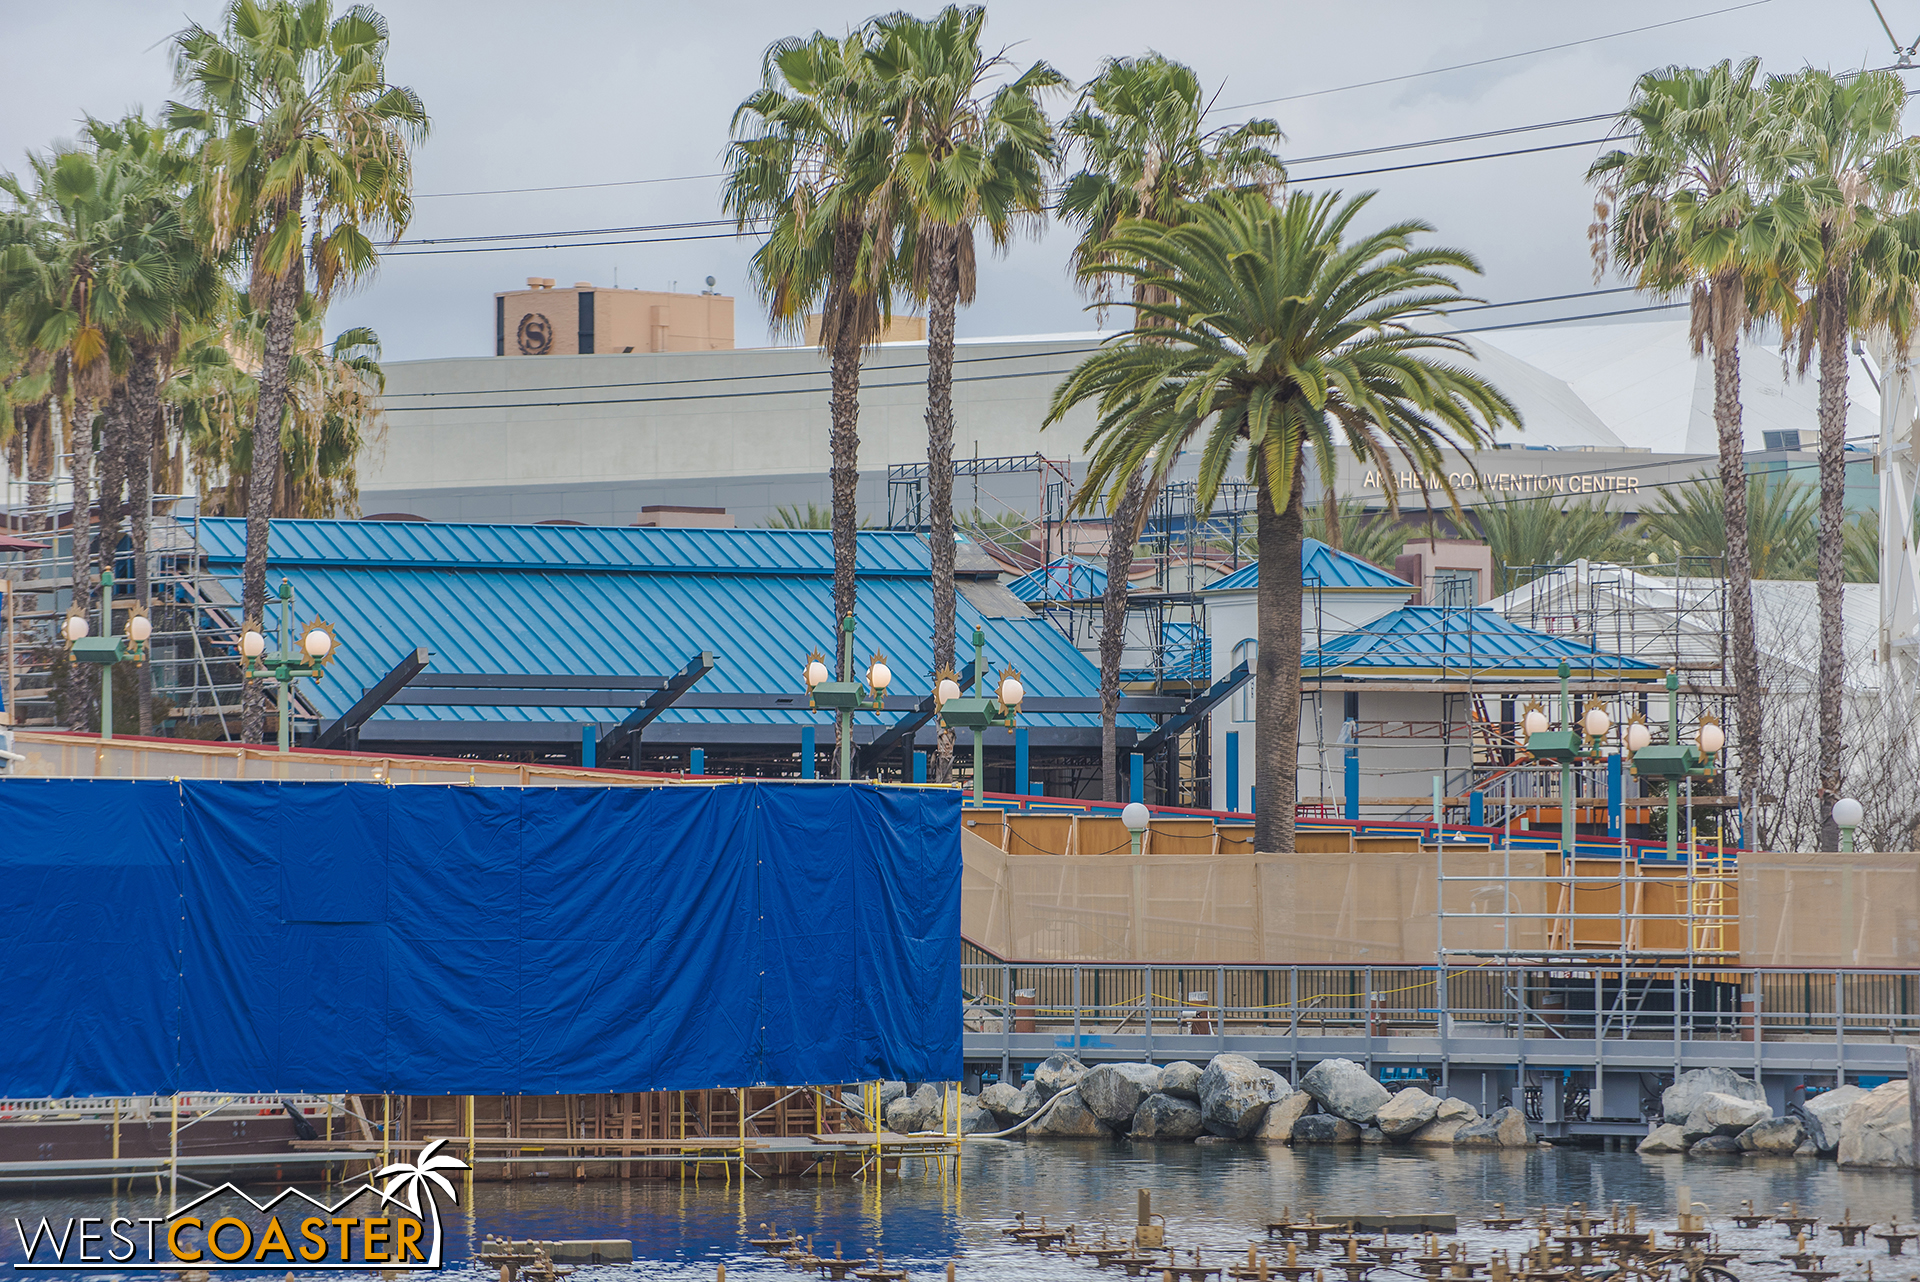 Over on the launch side, some steel has popped up for the Incredicoaster station. But more on that in a bit.